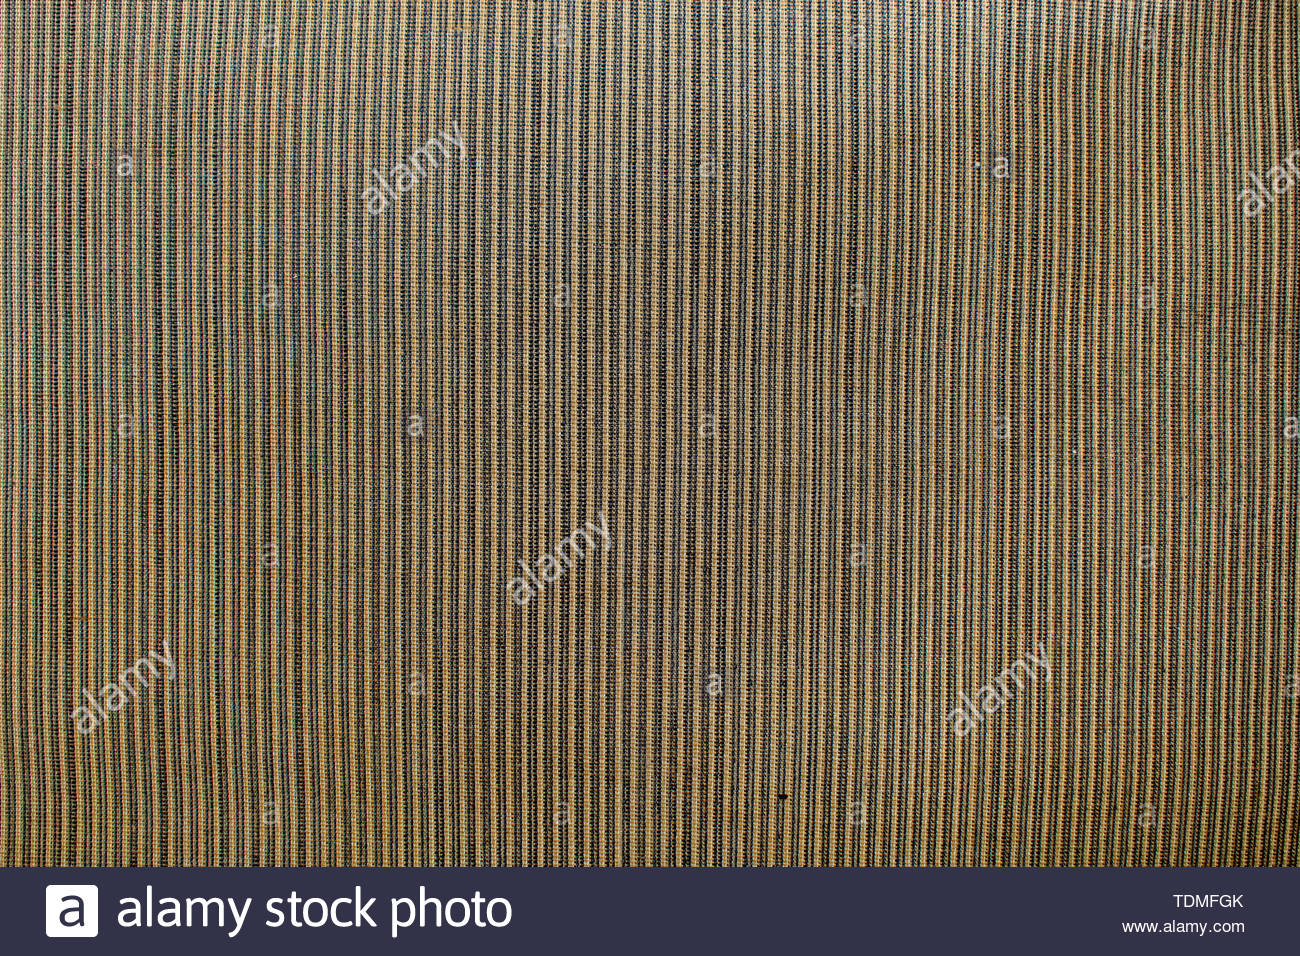 Fabric or textile detailed texture. Brown tones background. - Stock Image